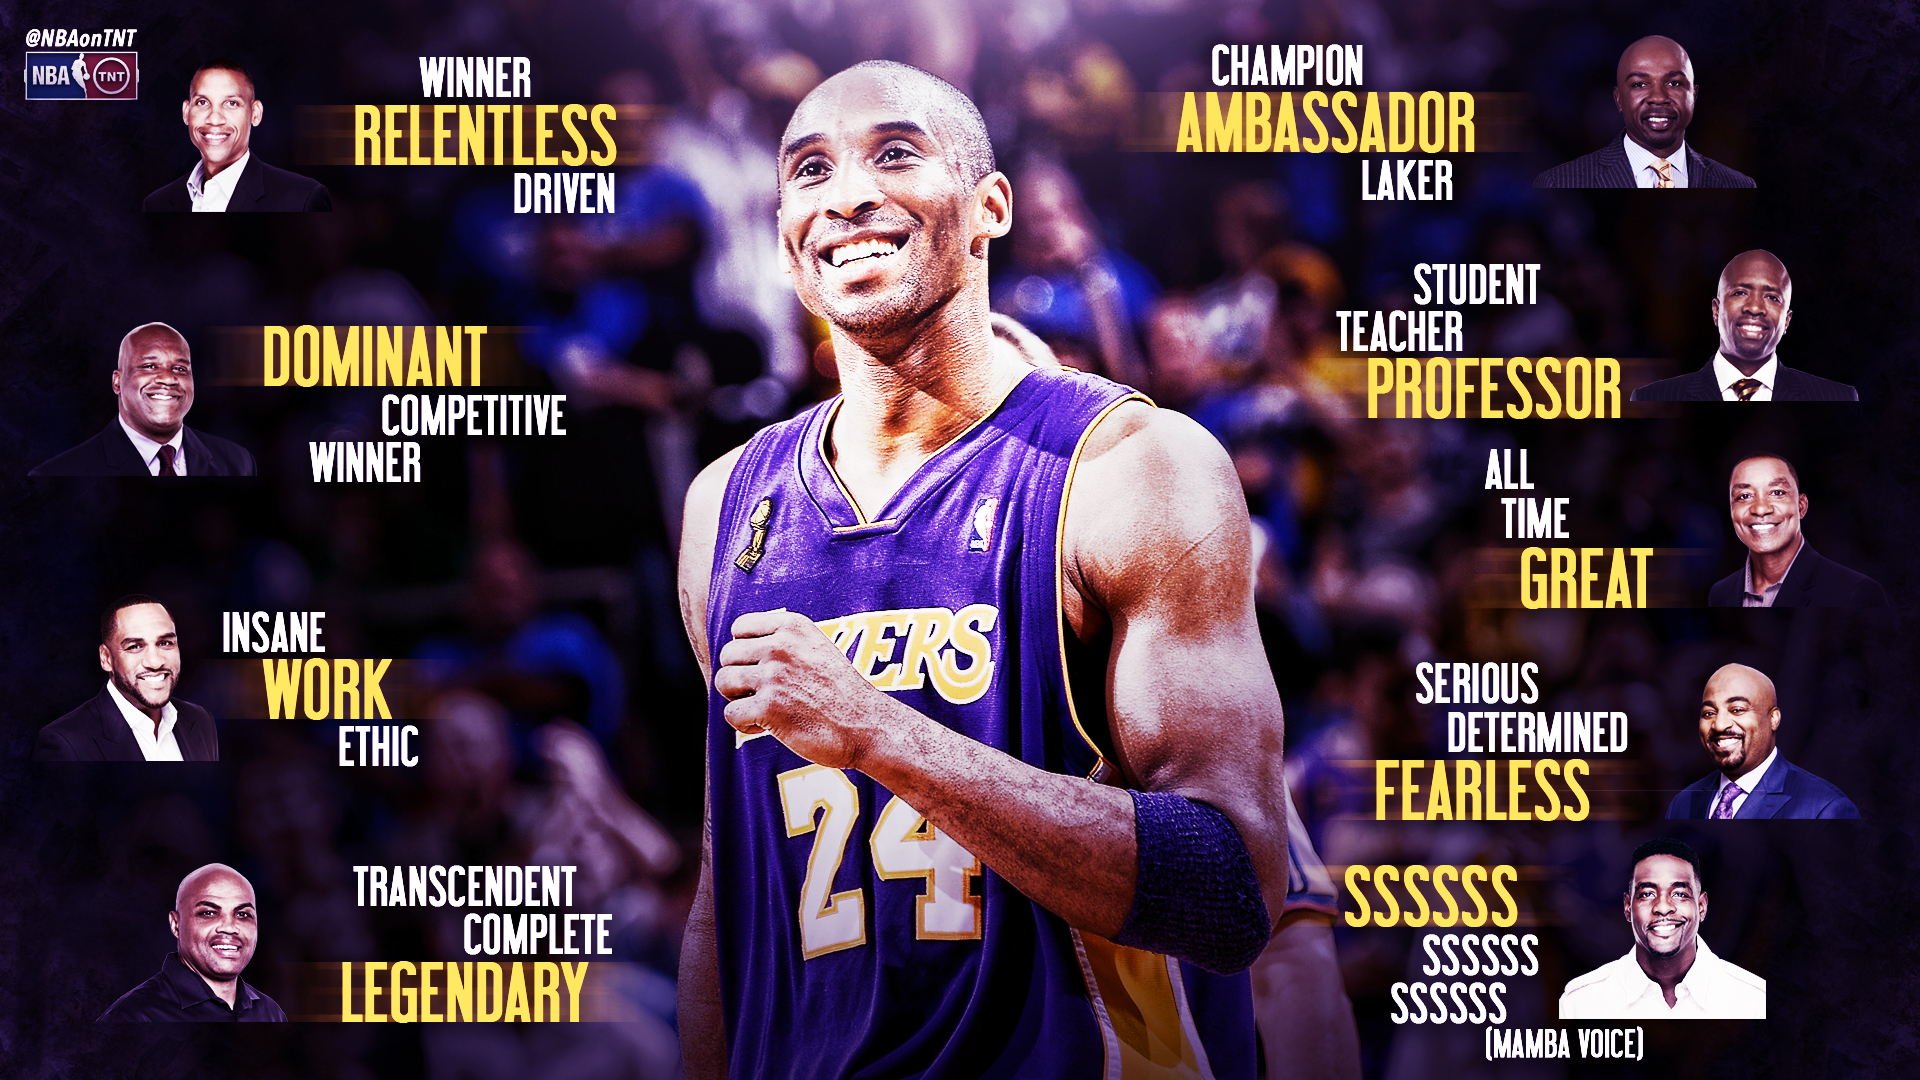 Three words to describe Kobe